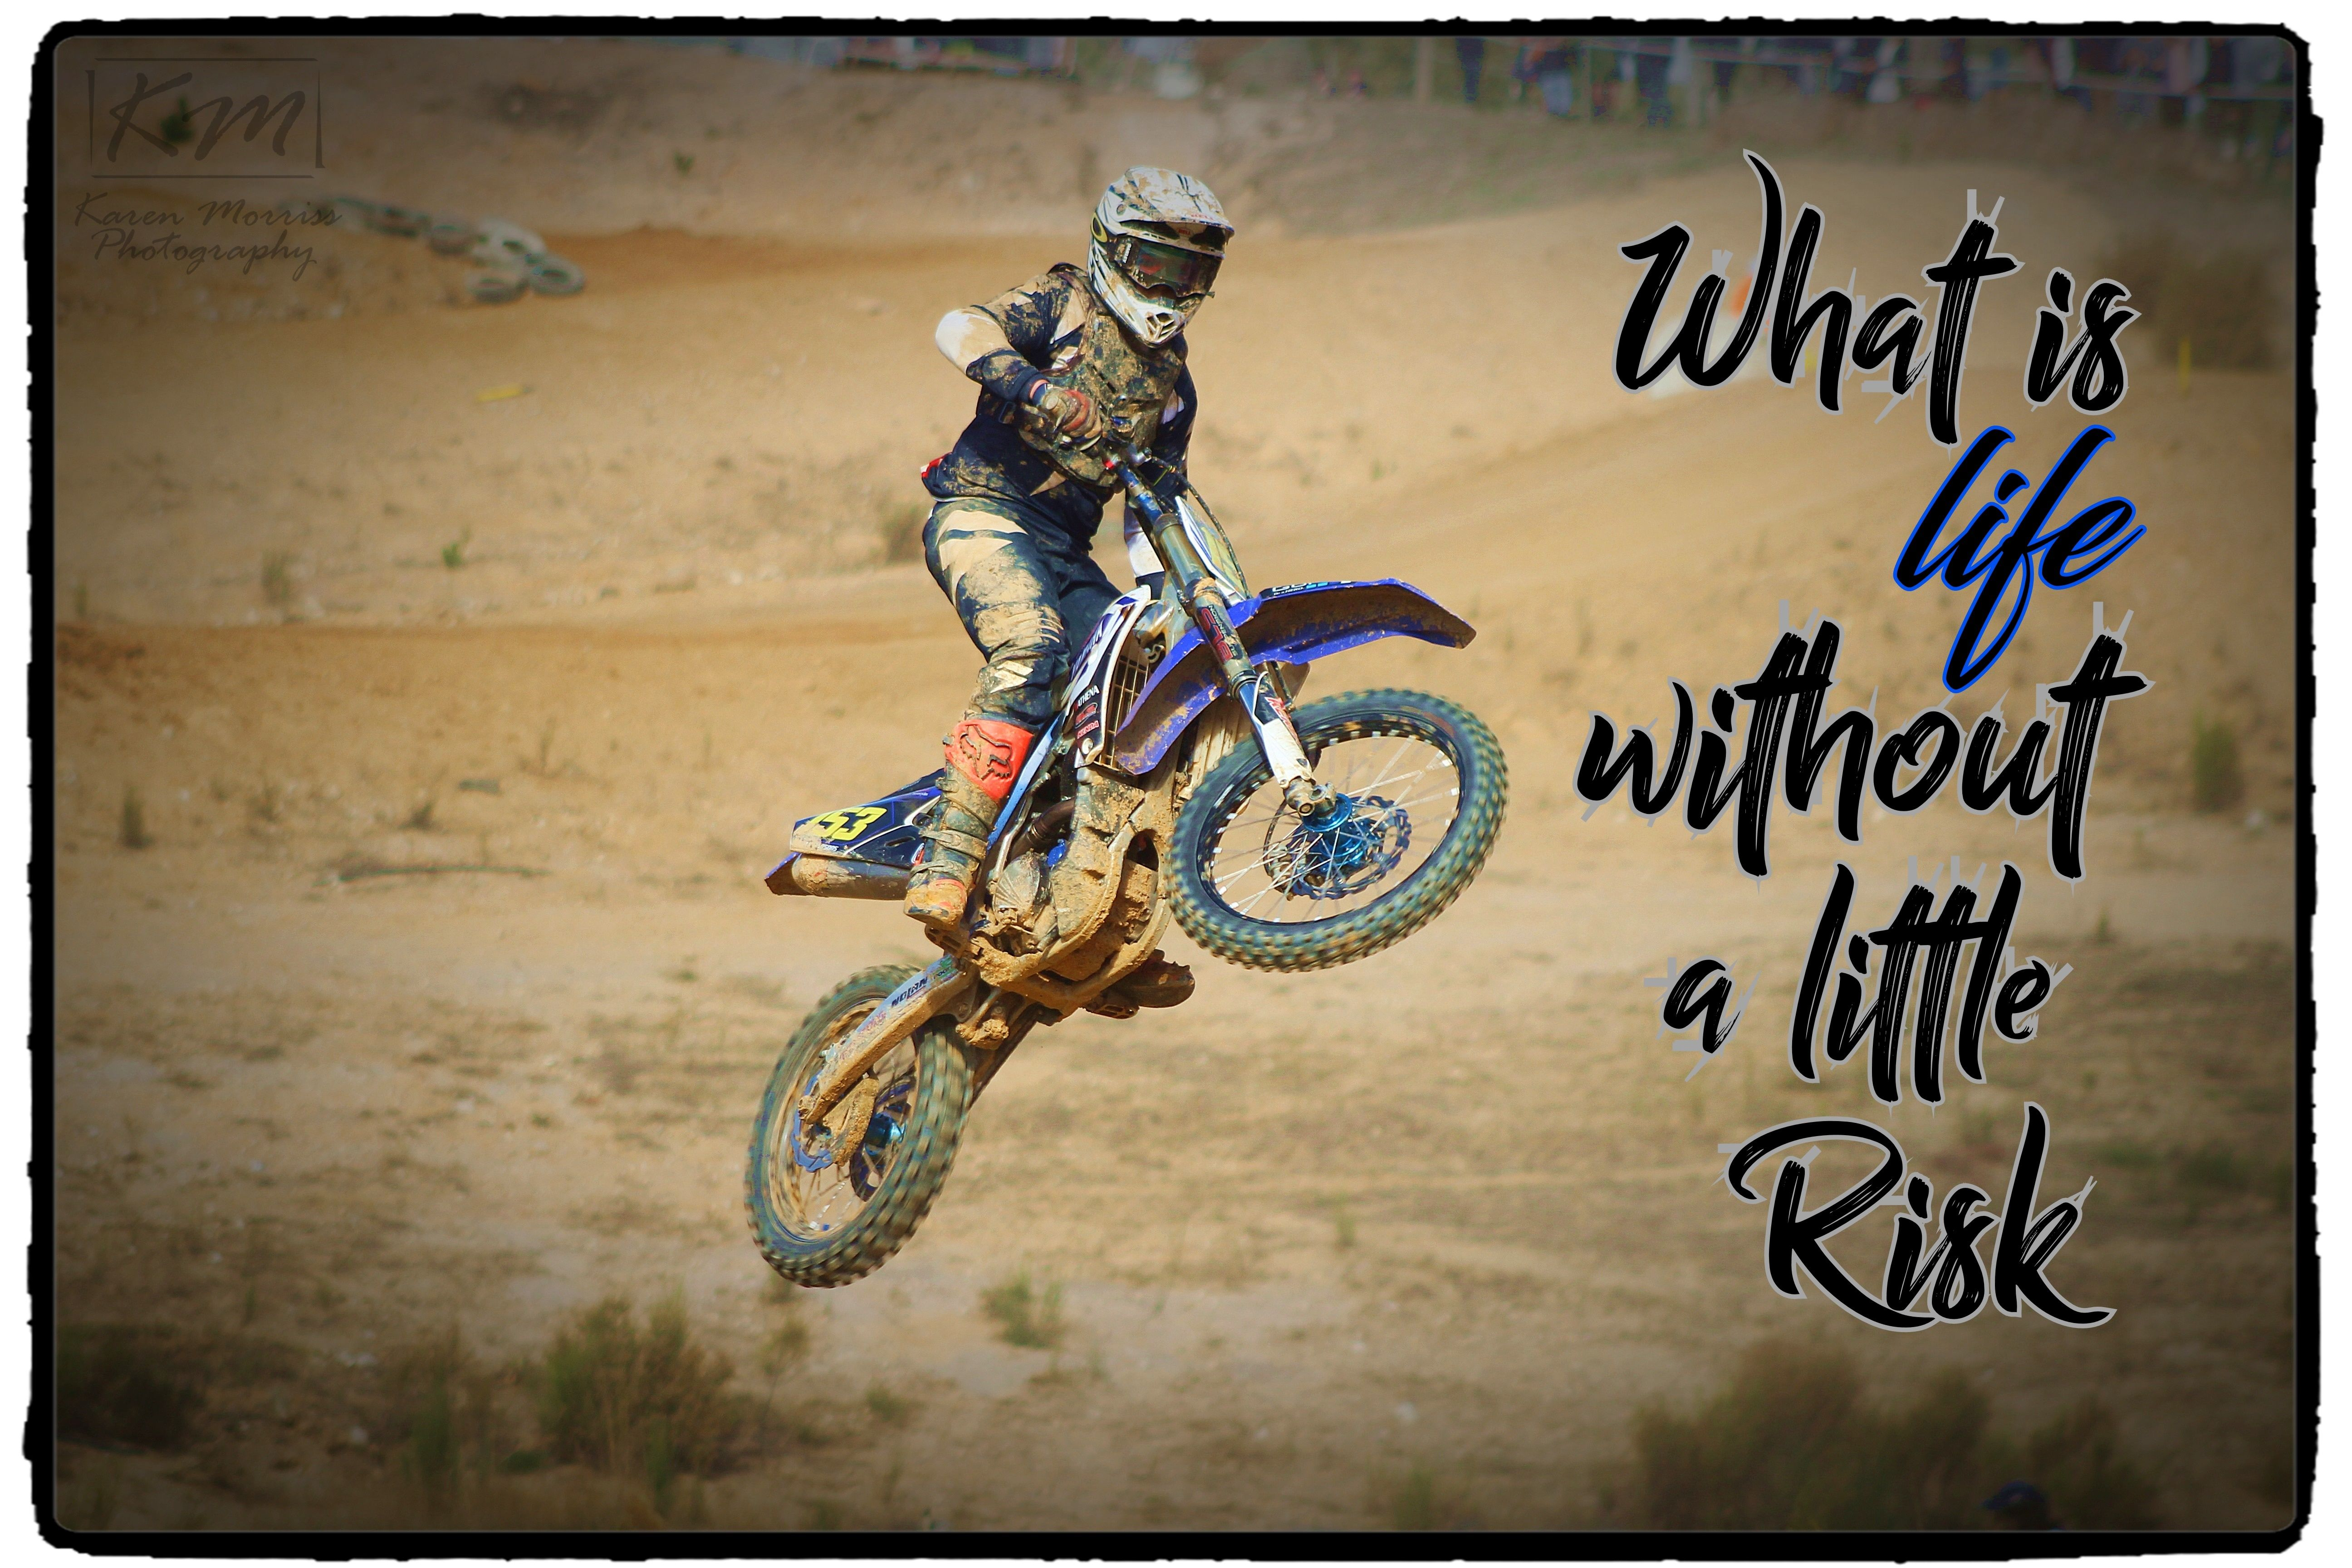 Noah Motocross Quote Dirt Bike Quotes Motocross Quotes Bike Quotes